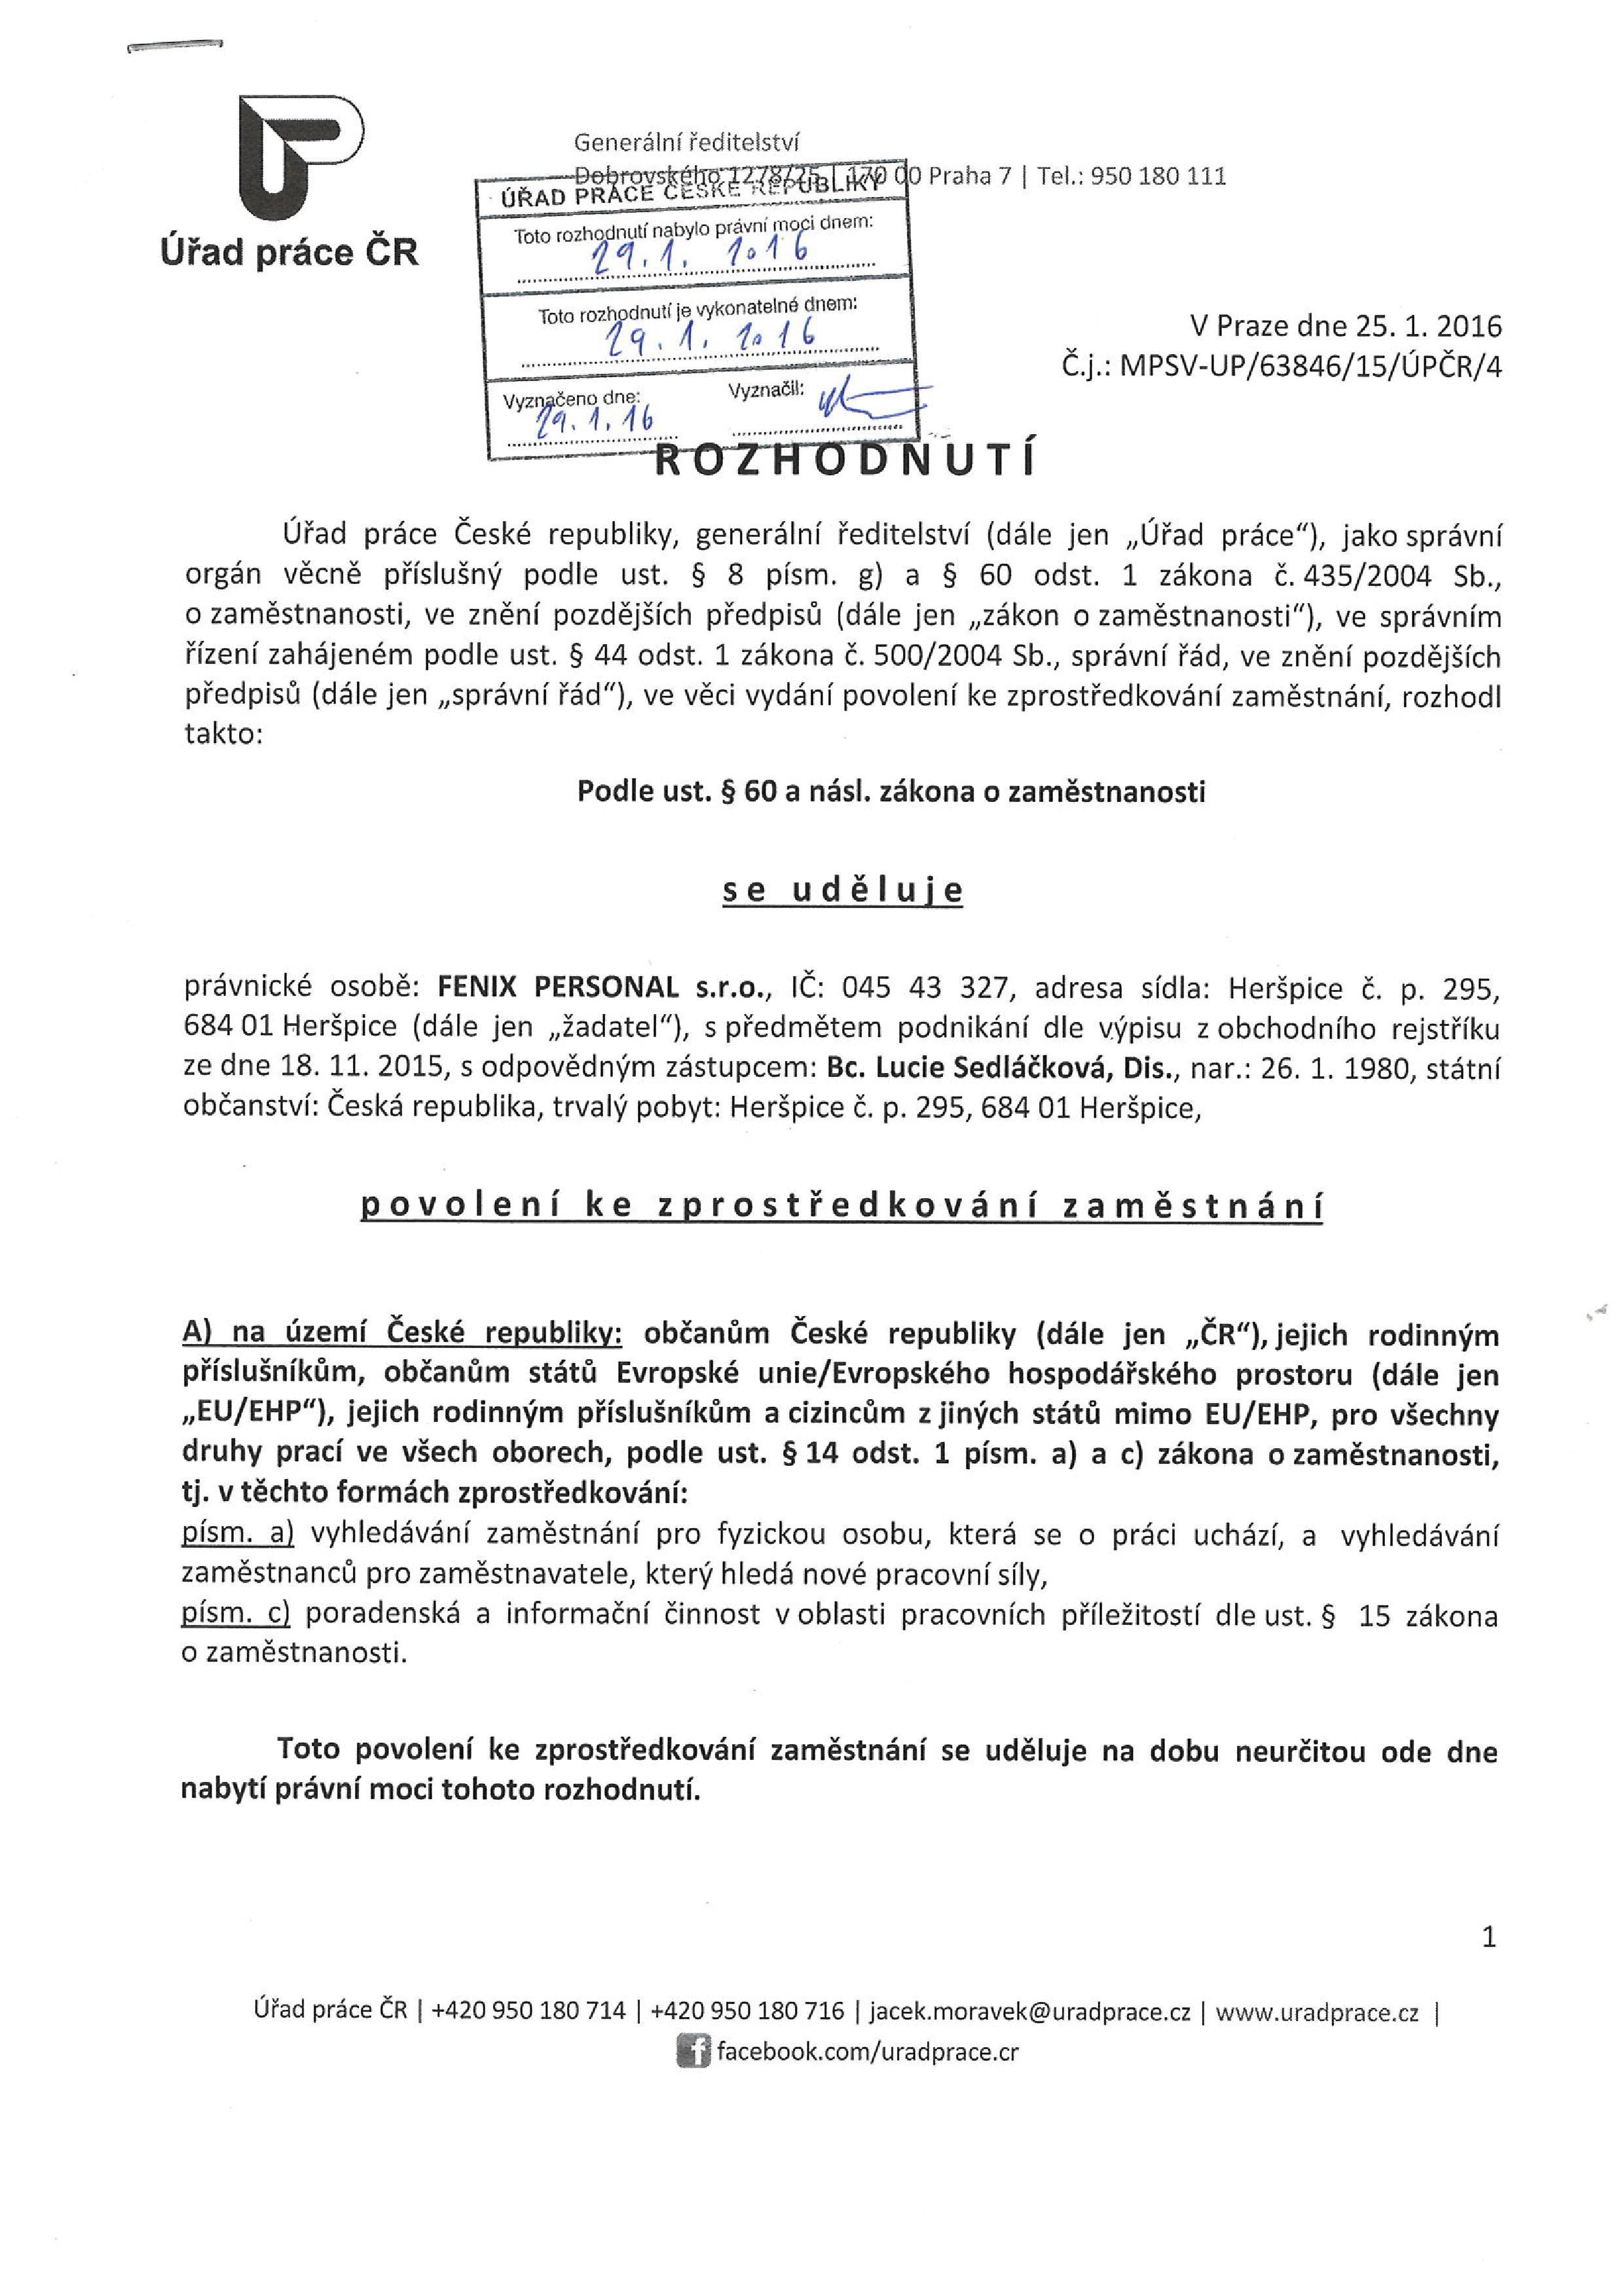 Employment mediation permit